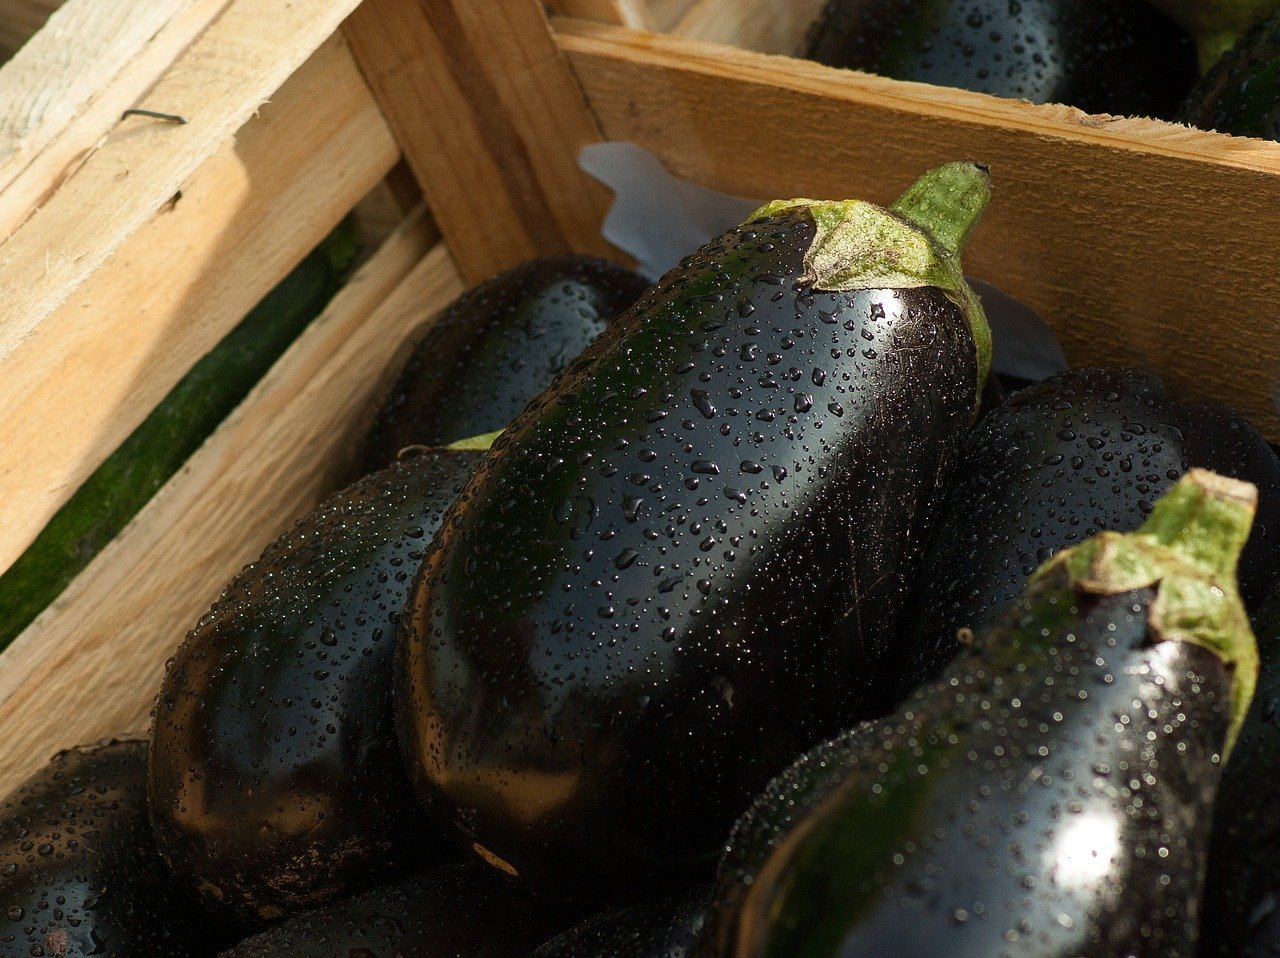 How To Grow Lots of Eggplants